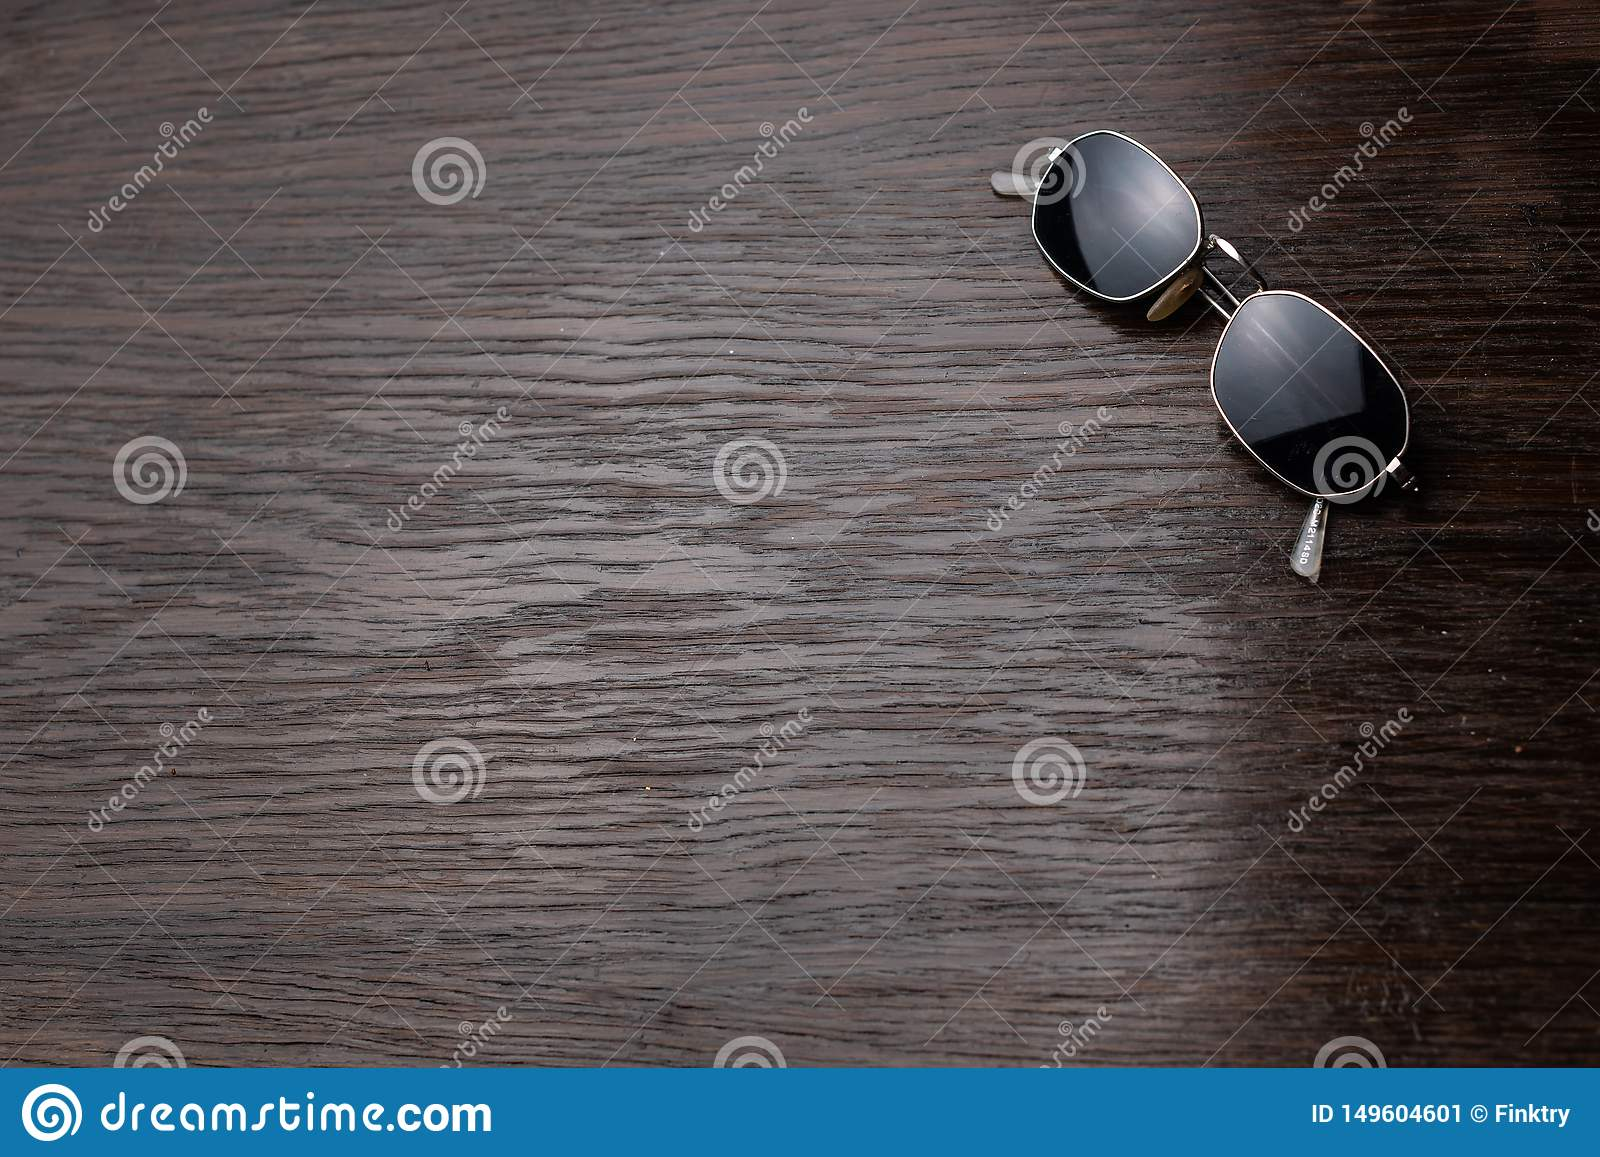 Sunglasses on a dark wooden table